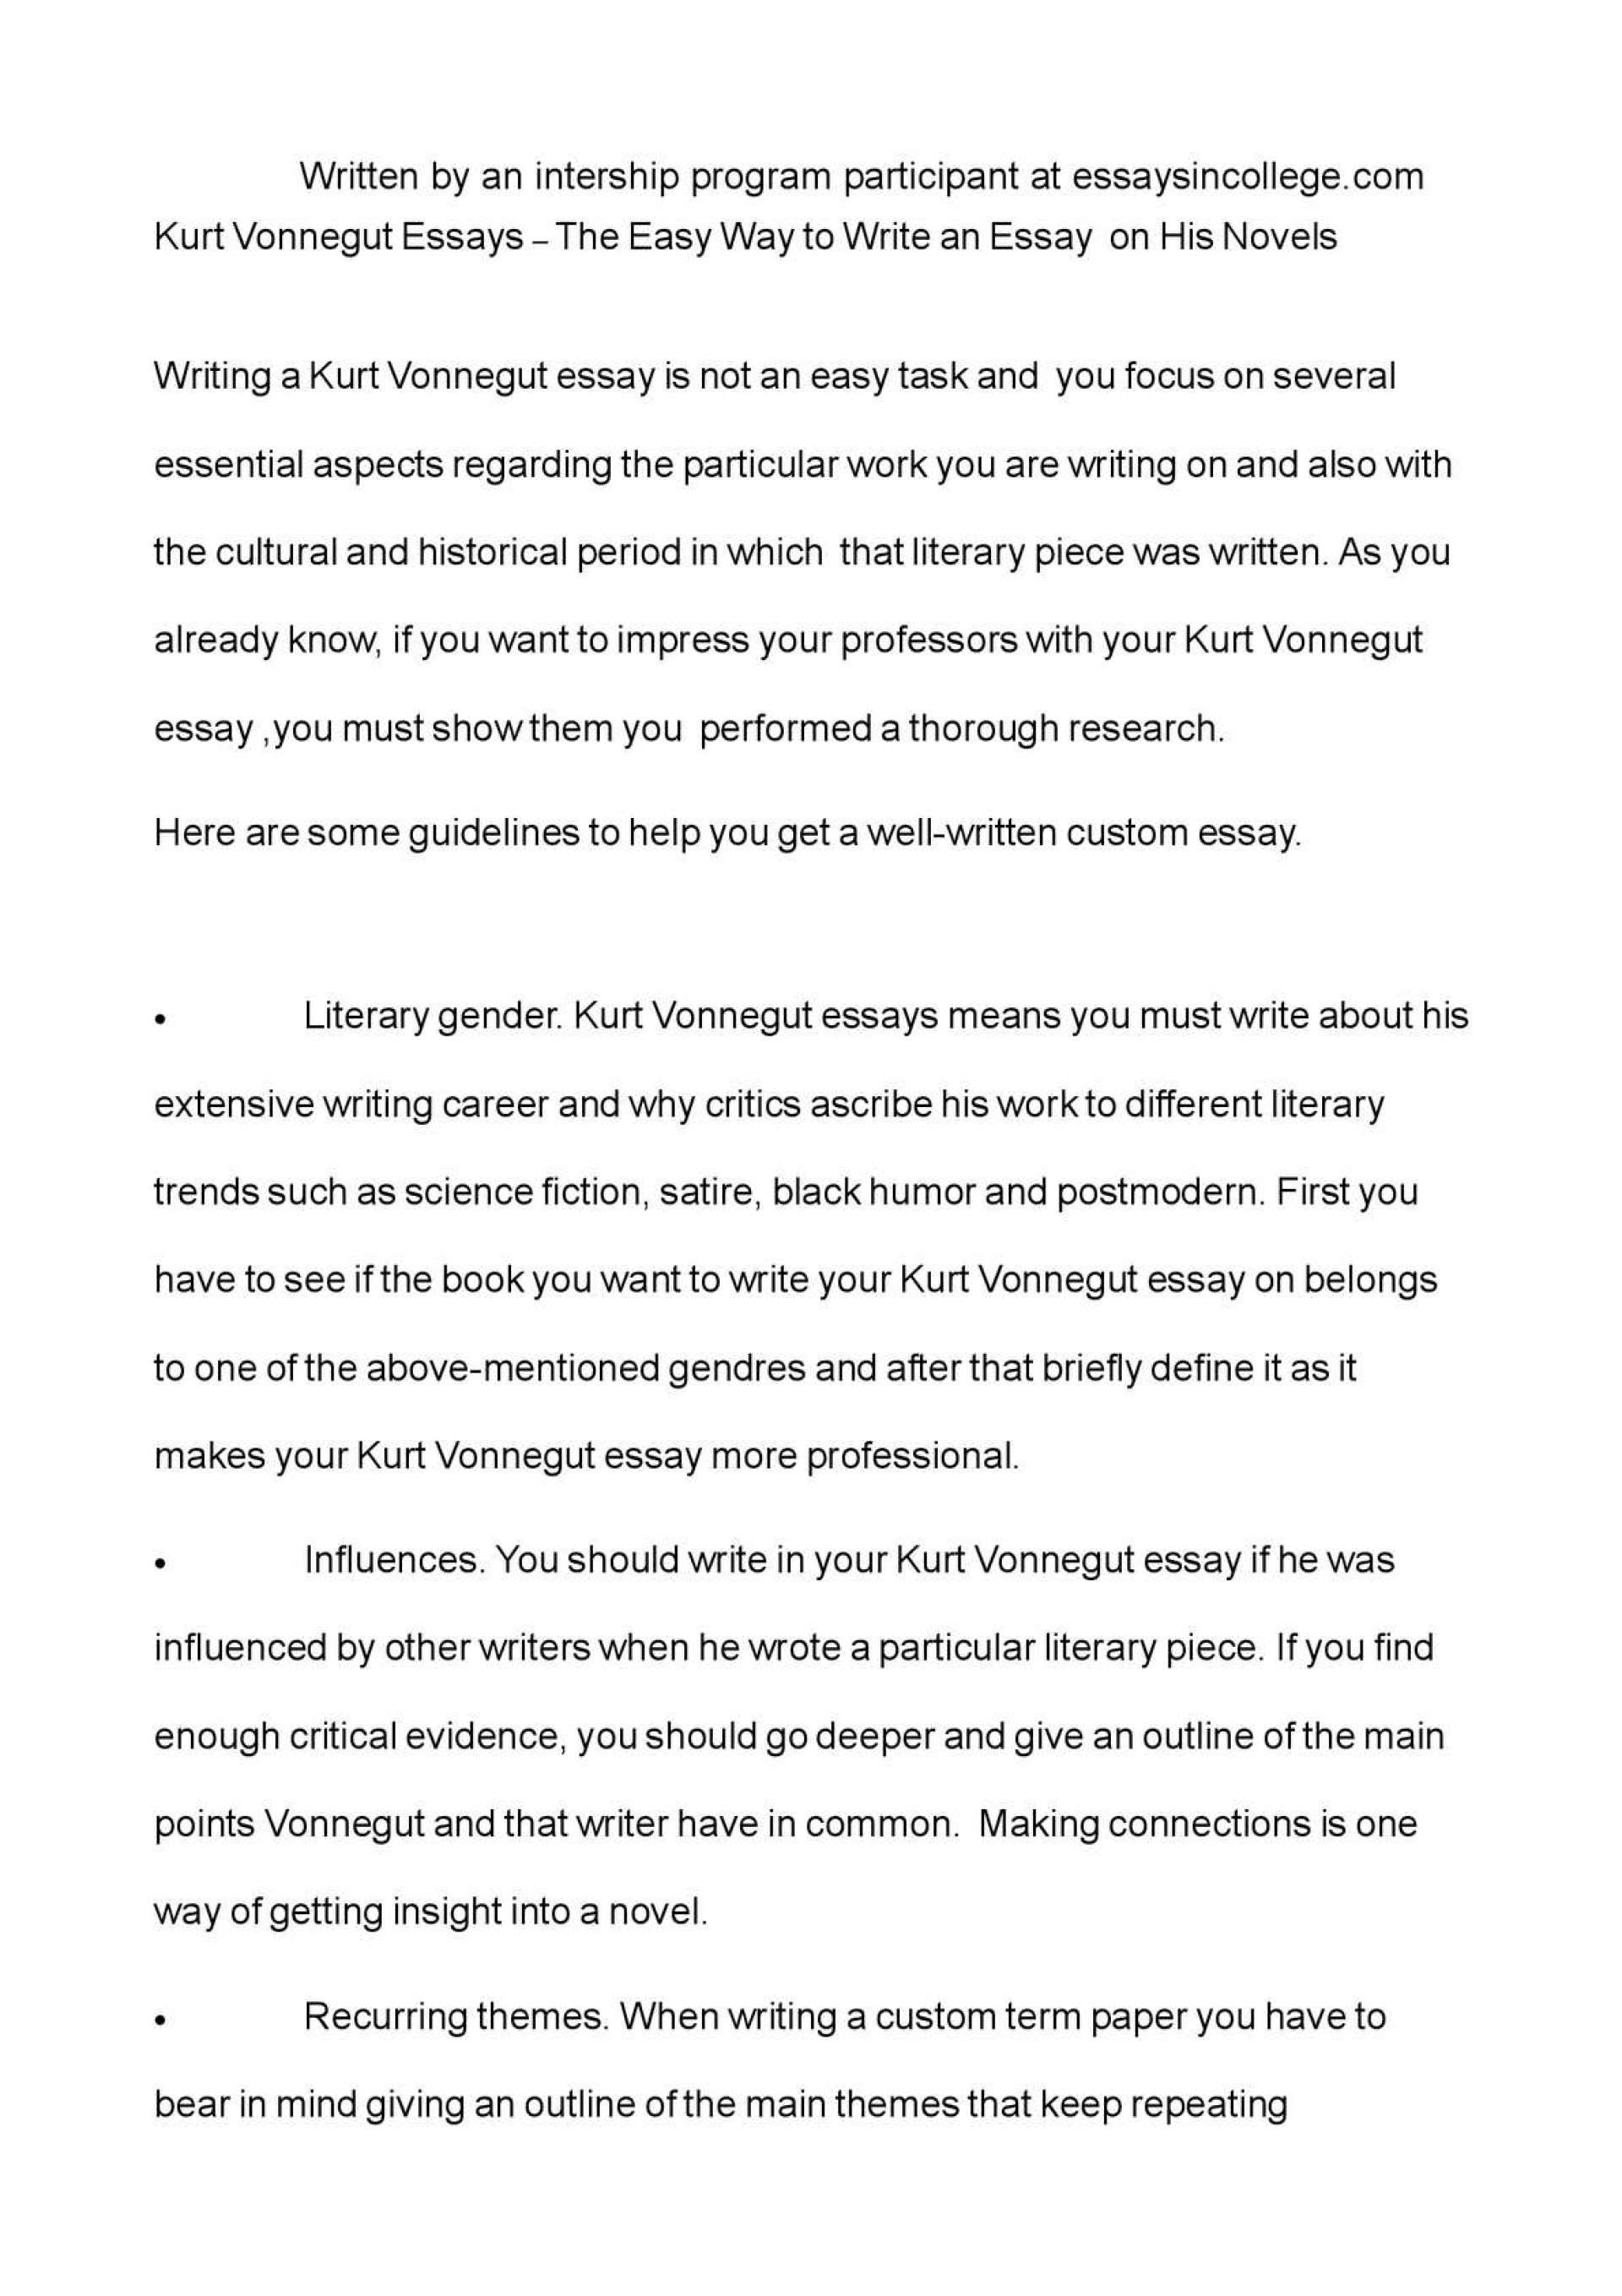 003 Easy Way To Write An Essay P1 Excellent Argumentative How Analytical Example In Ielts Task 2 1920